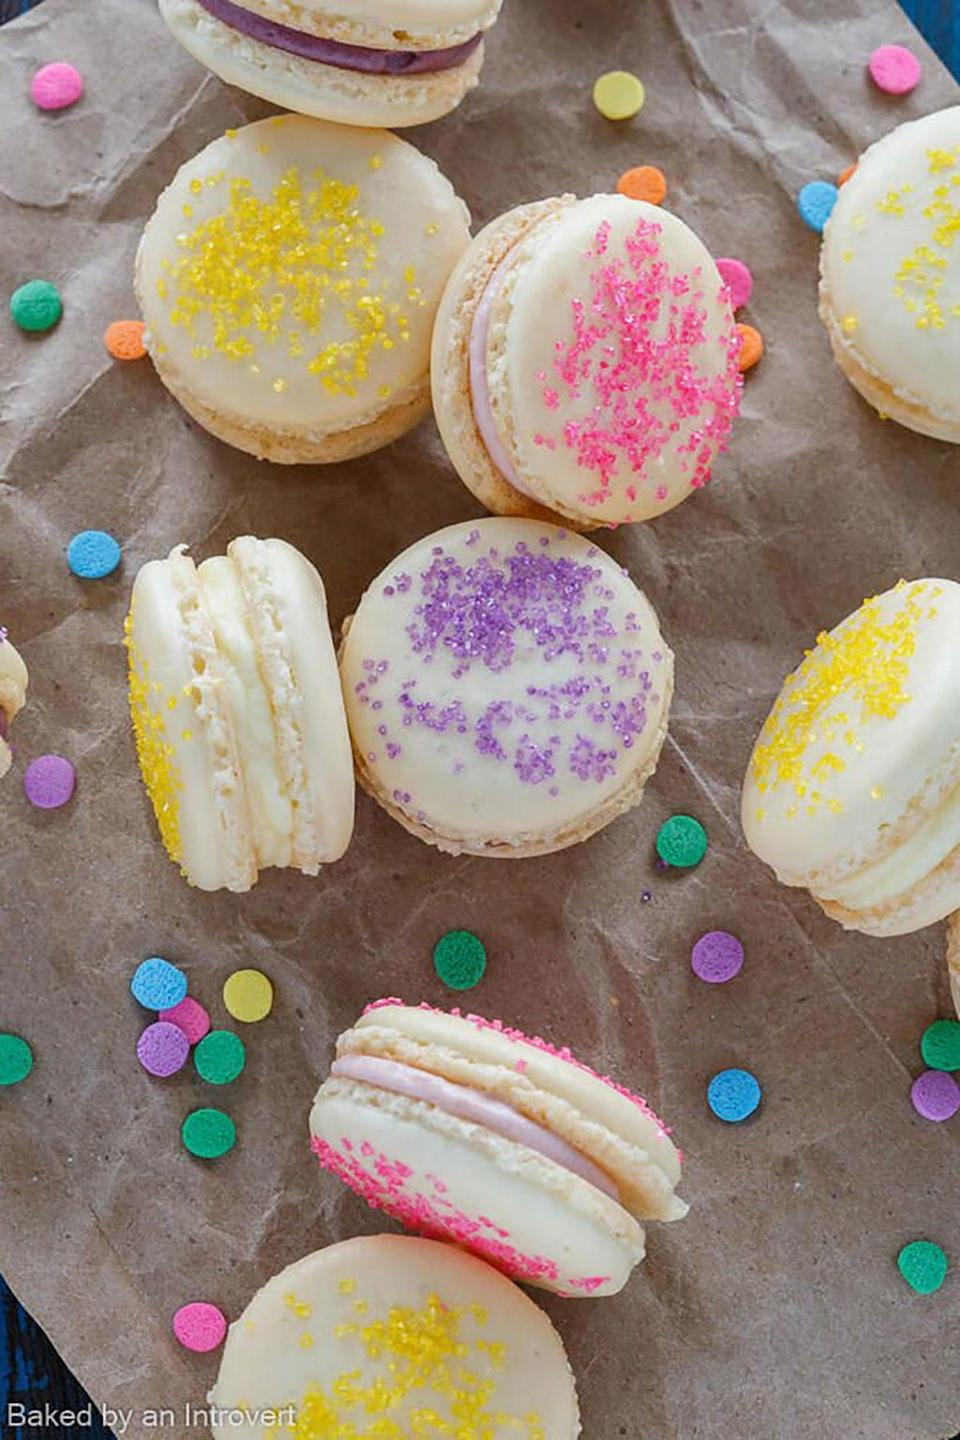 """<p><span>We love the way blogger Jen color-coordinated the sprinkles with the filling flavor.</span></p><p><strong>Get the recipe at <a href=""""http://www.bakedbyanintrovert.com/easter-cheesecake-macarons-recipe/"""" rel=""""nofollow noopener"""" target=""""_blank"""" data-ylk=""""slk:Baked By An Introvert"""" class=""""link rapid-noclick-resp"""">Baked By An Introvert</a>. </strong></p>"""